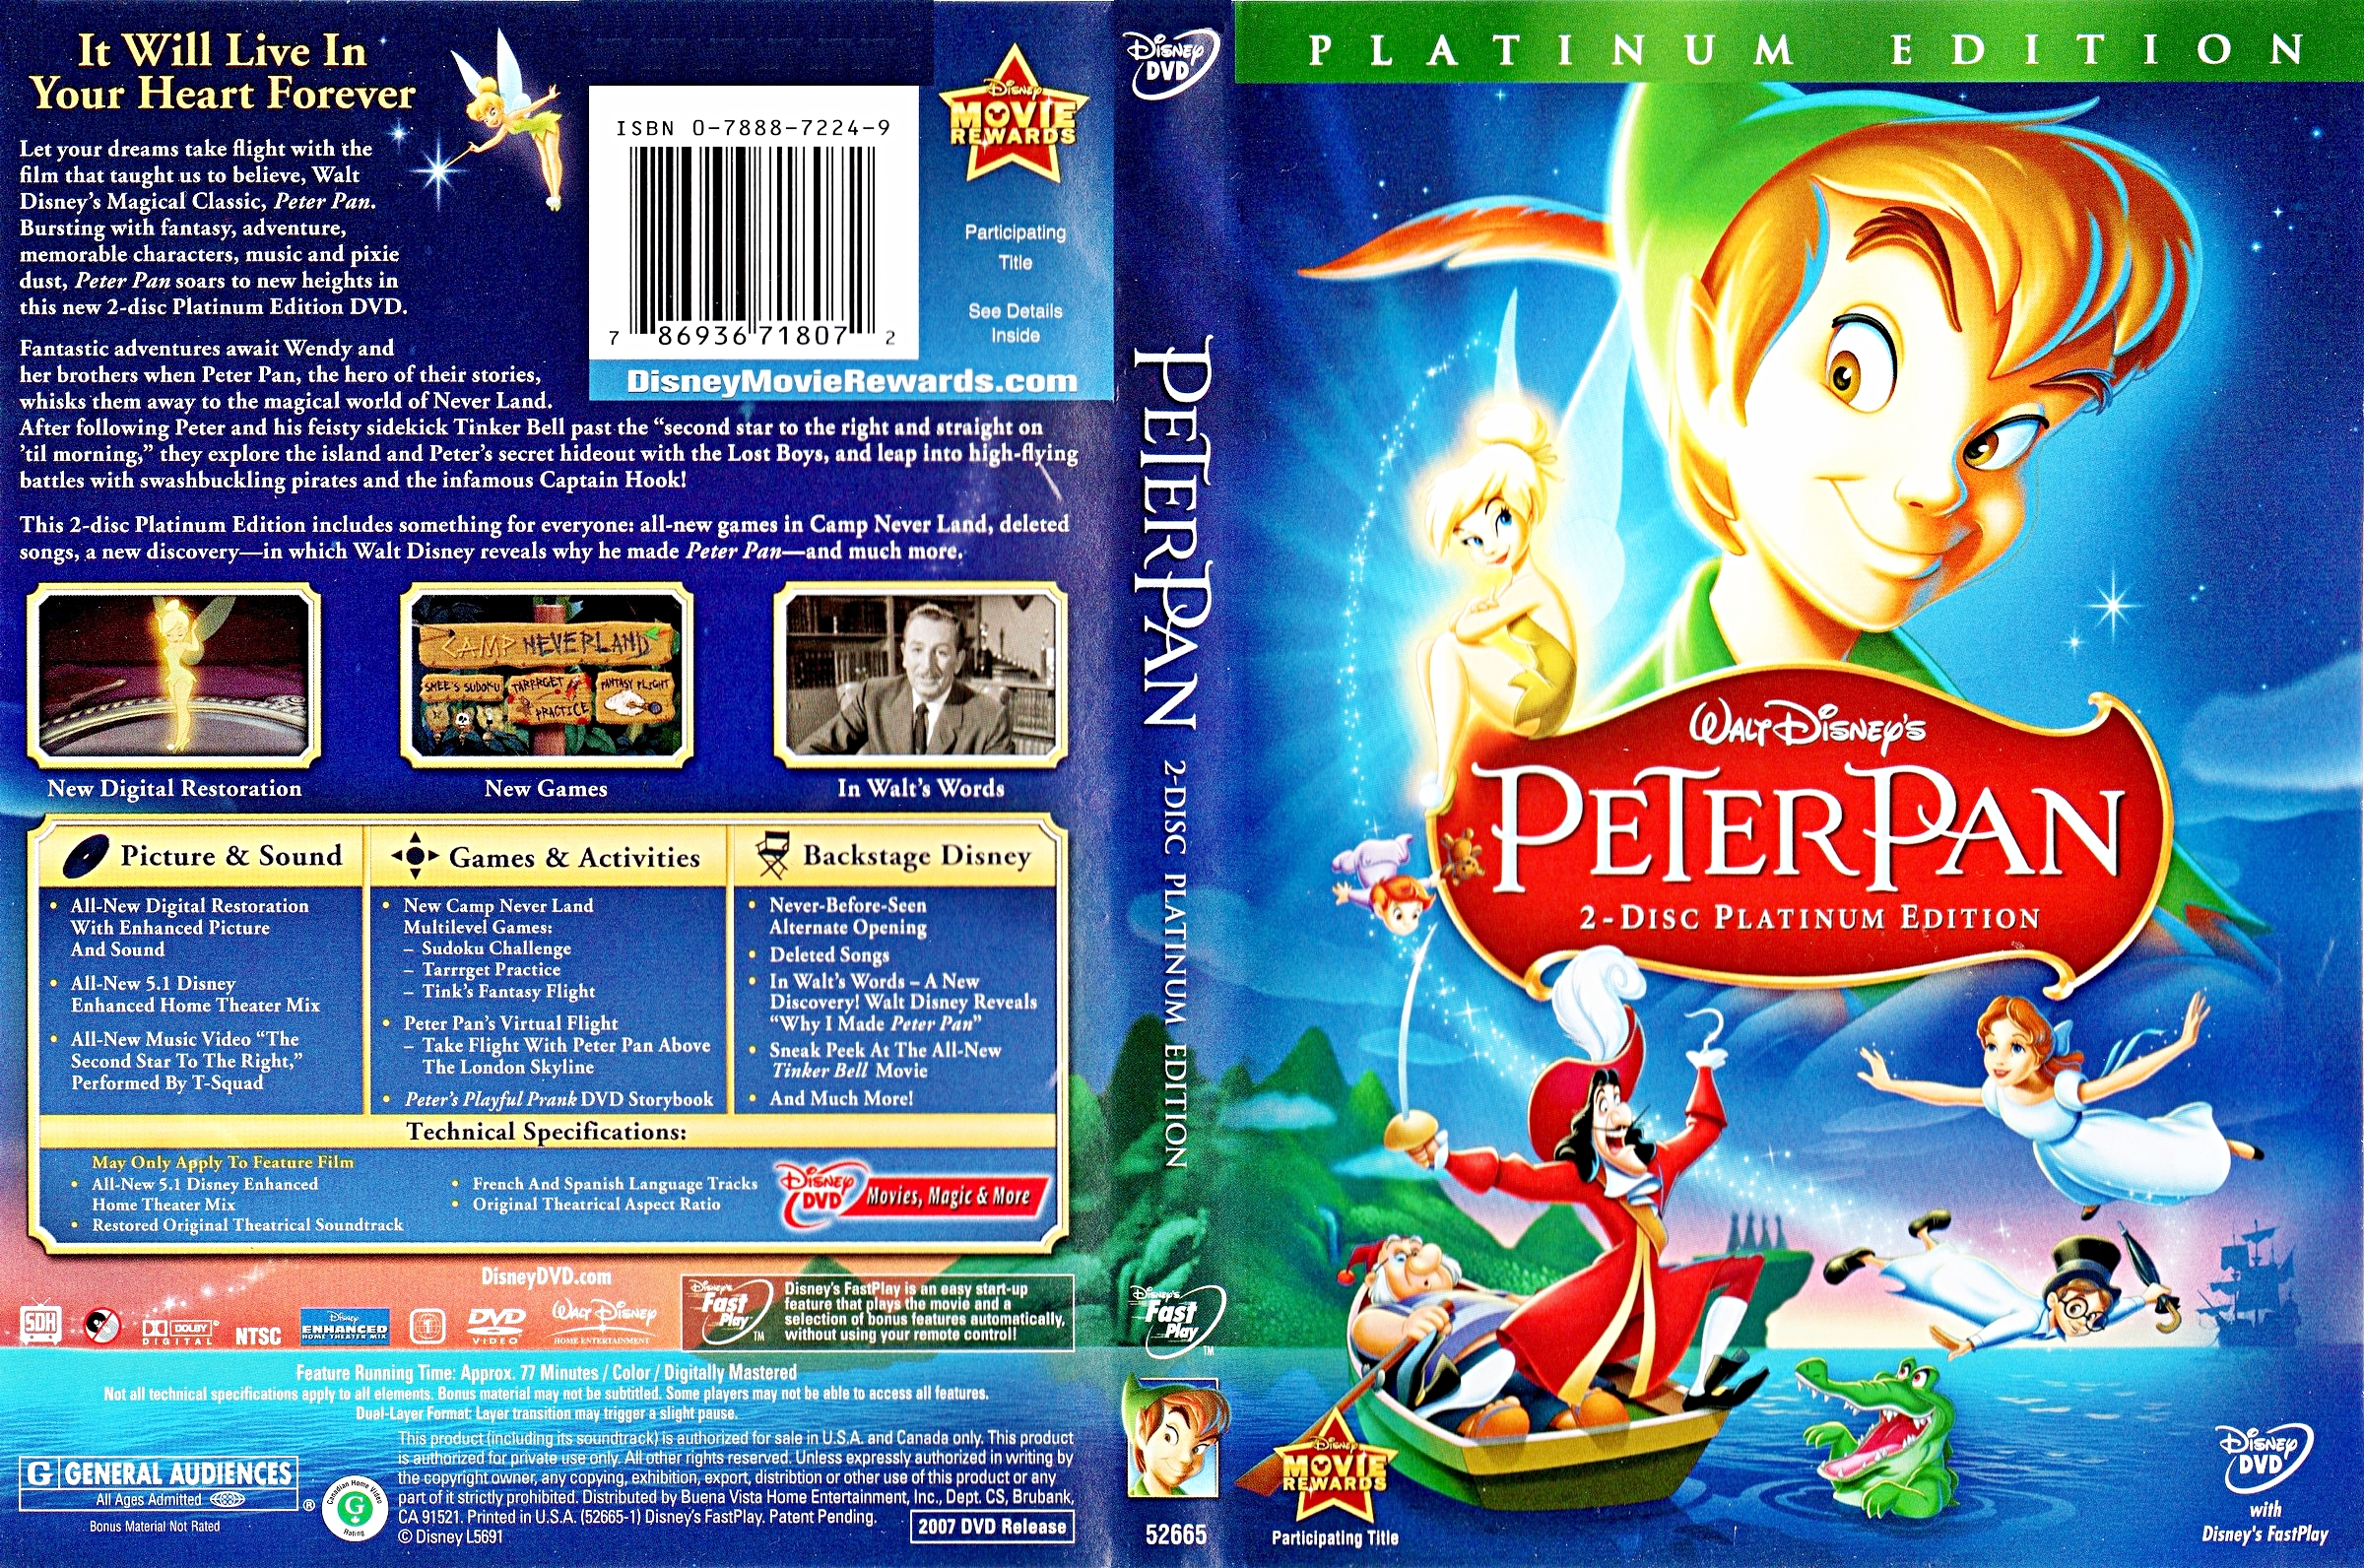 Walt disney DVD Covers - Peter Pan: 2 Disc Platinum Edition